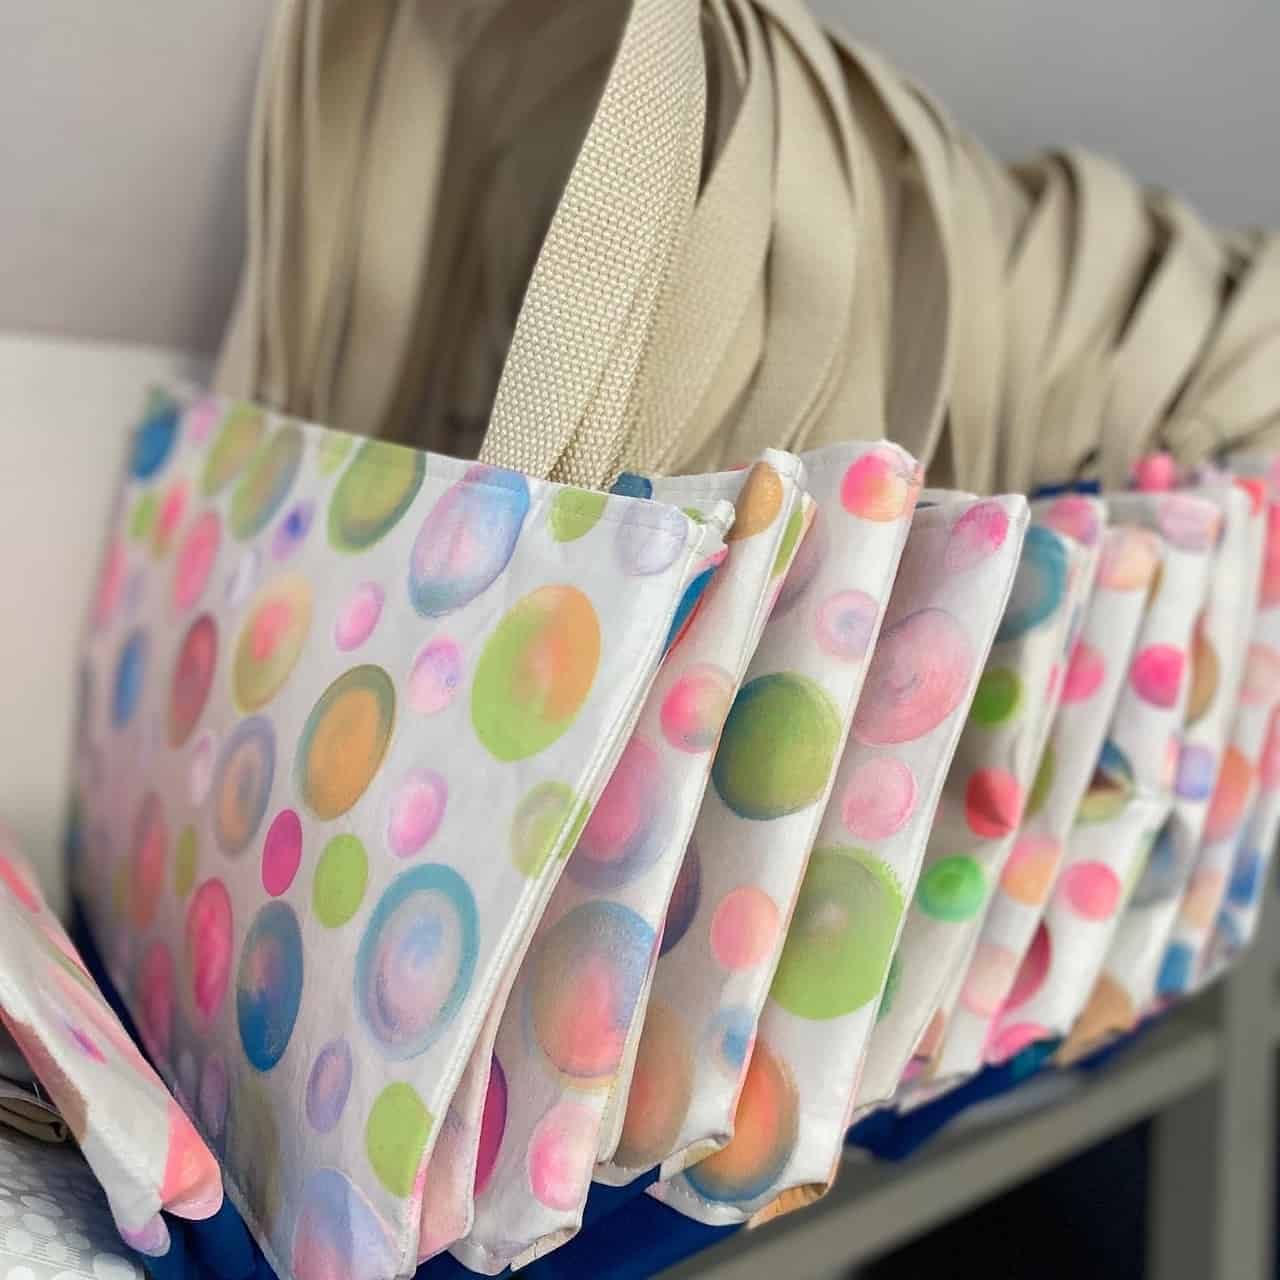 A row of tote bags with purple, green and pink dots.